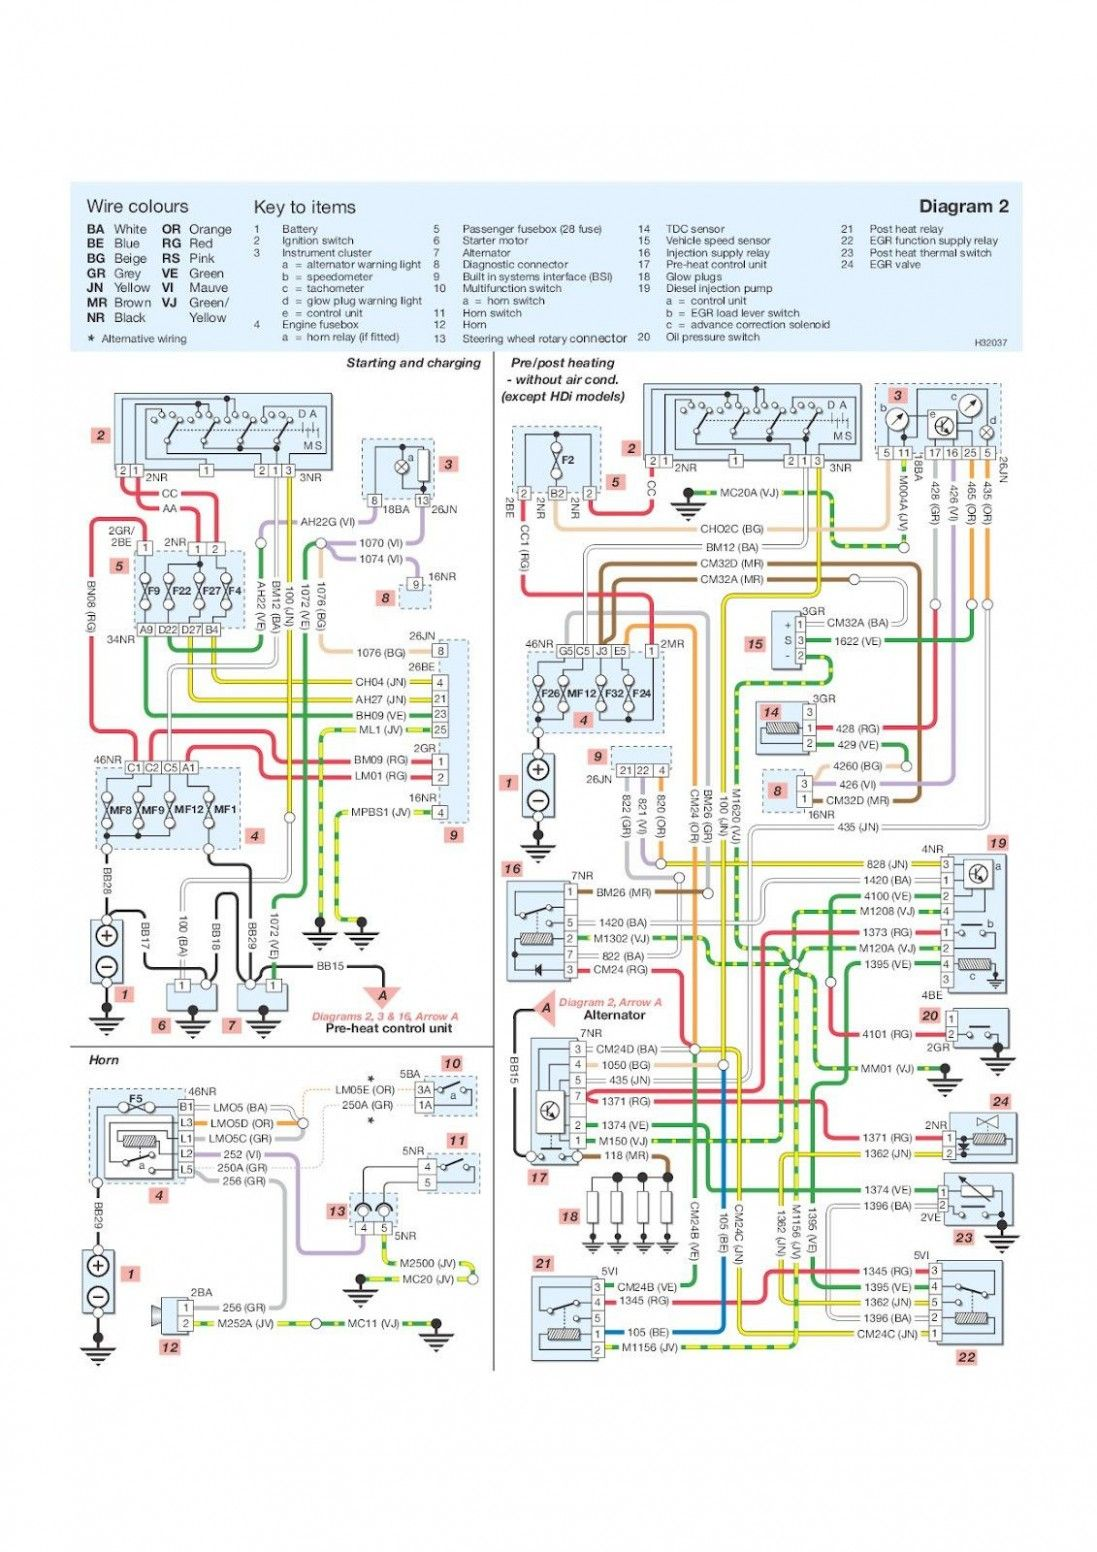 Engine Wiring Diagram Peugeot 8 Rc Engine Wiring Diagram Peugeot 8